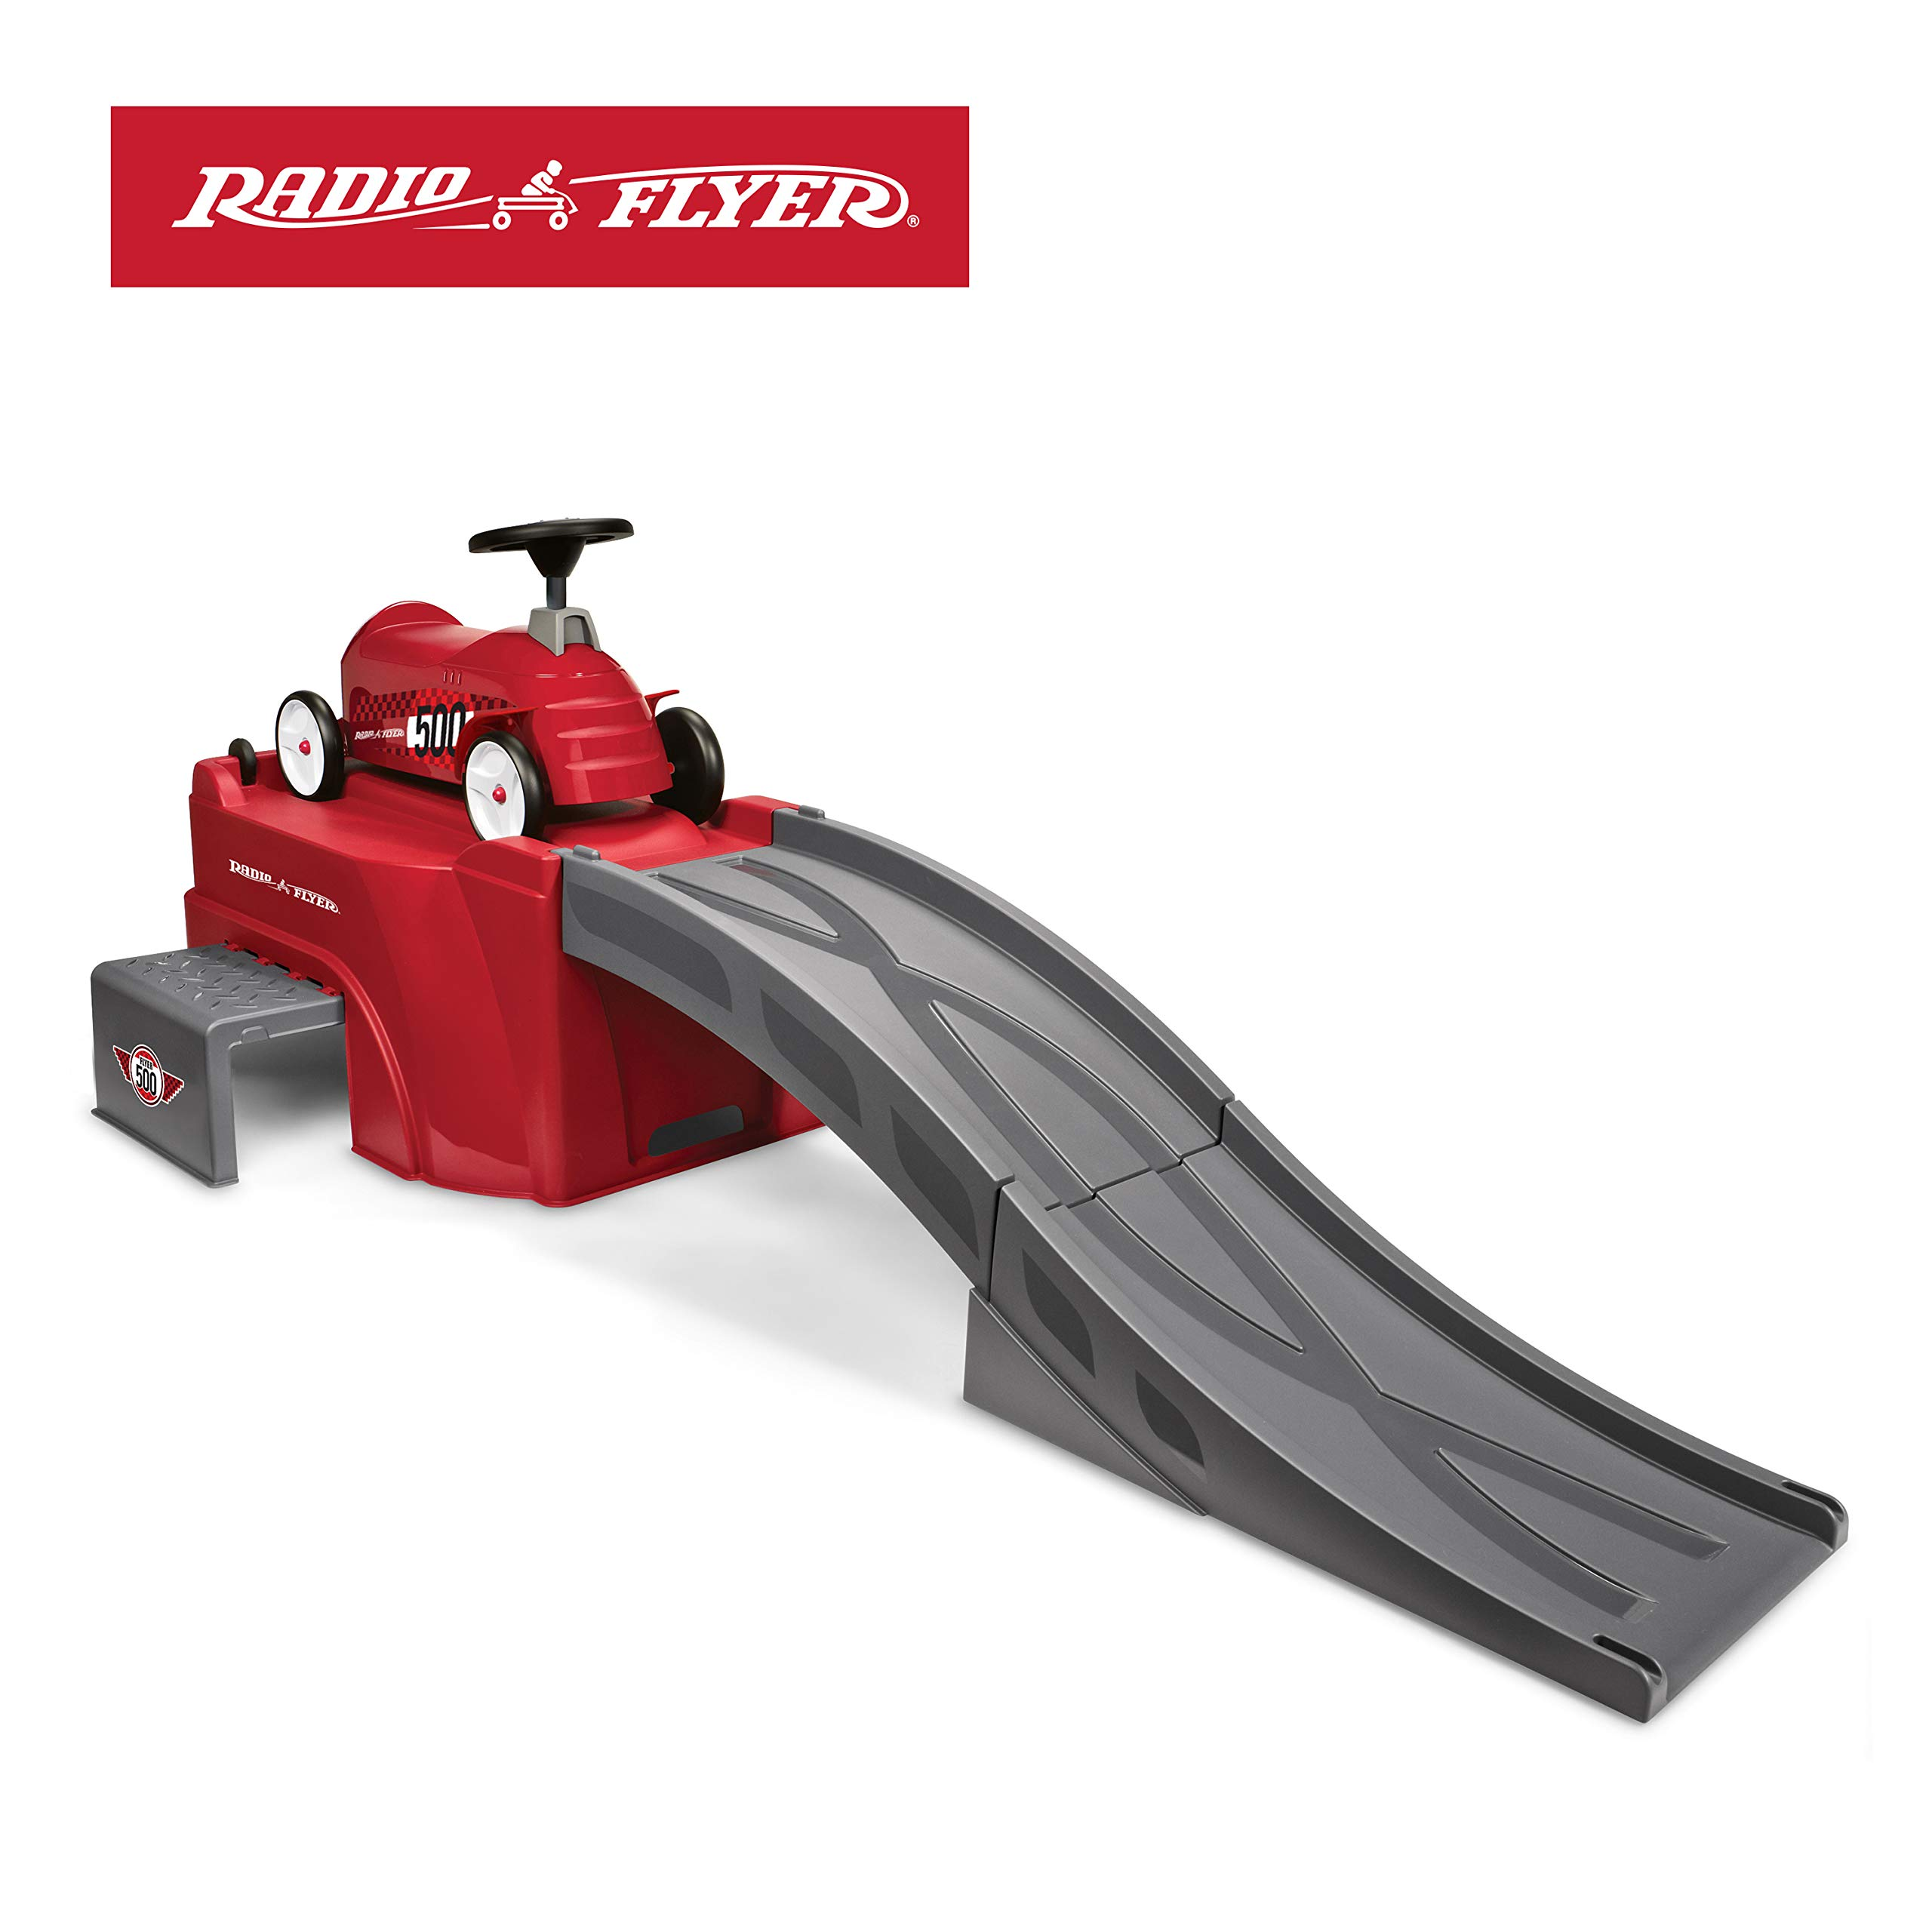 Radio Flyer 500 Ride-On with Ramp, Red by Radio Flyer